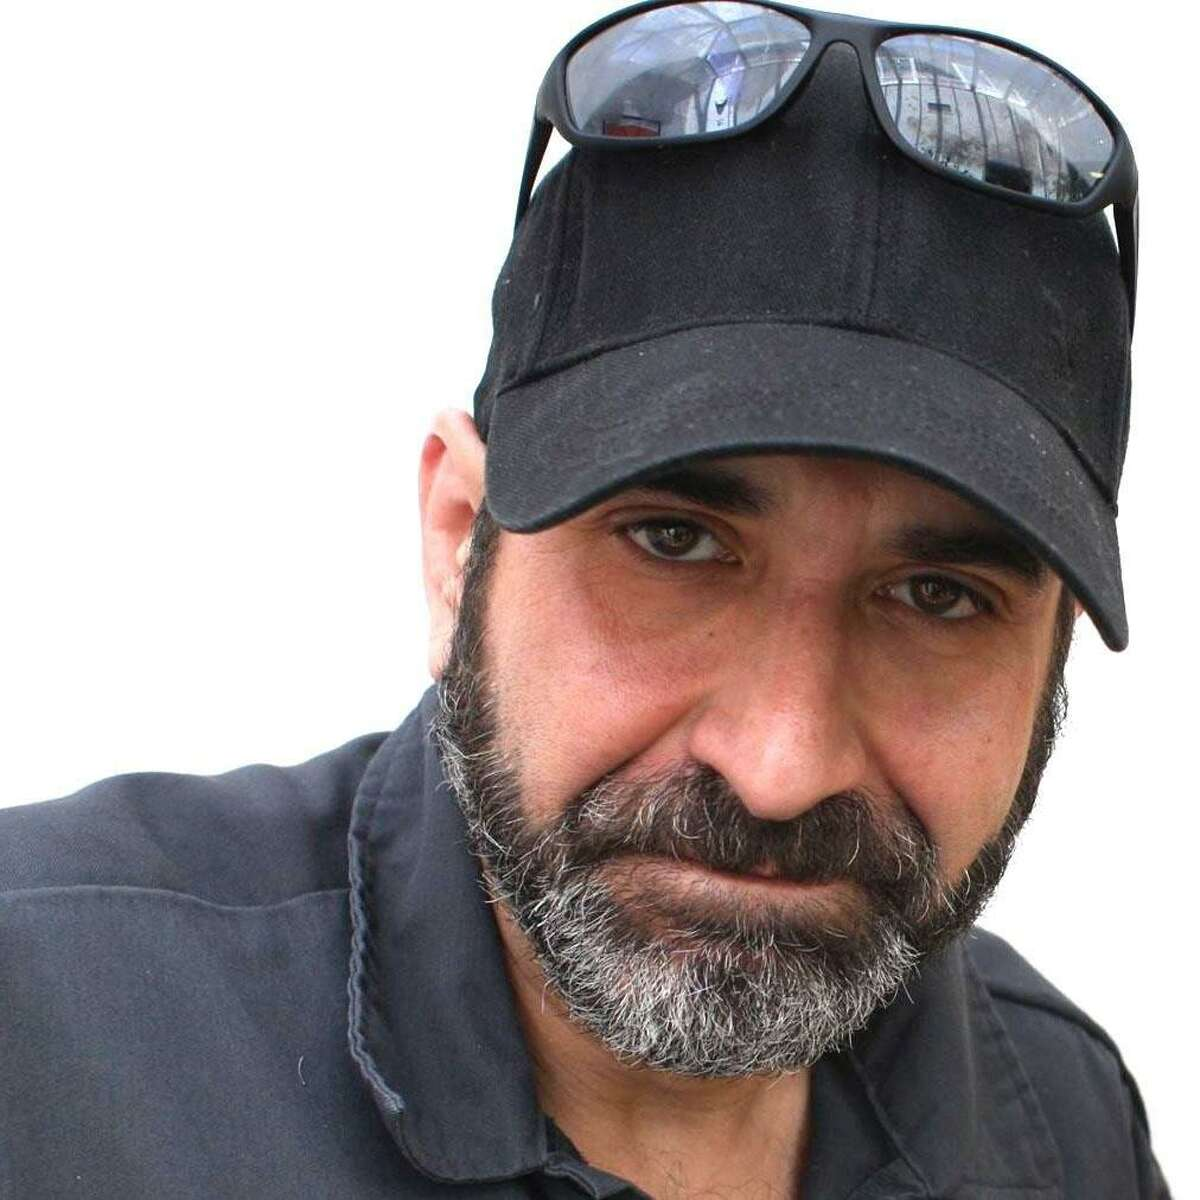 East Coast native and award winning comedian Dave Attell is scheduled to perform his stand-up show May 1 at The Warehouse in Fairfield.